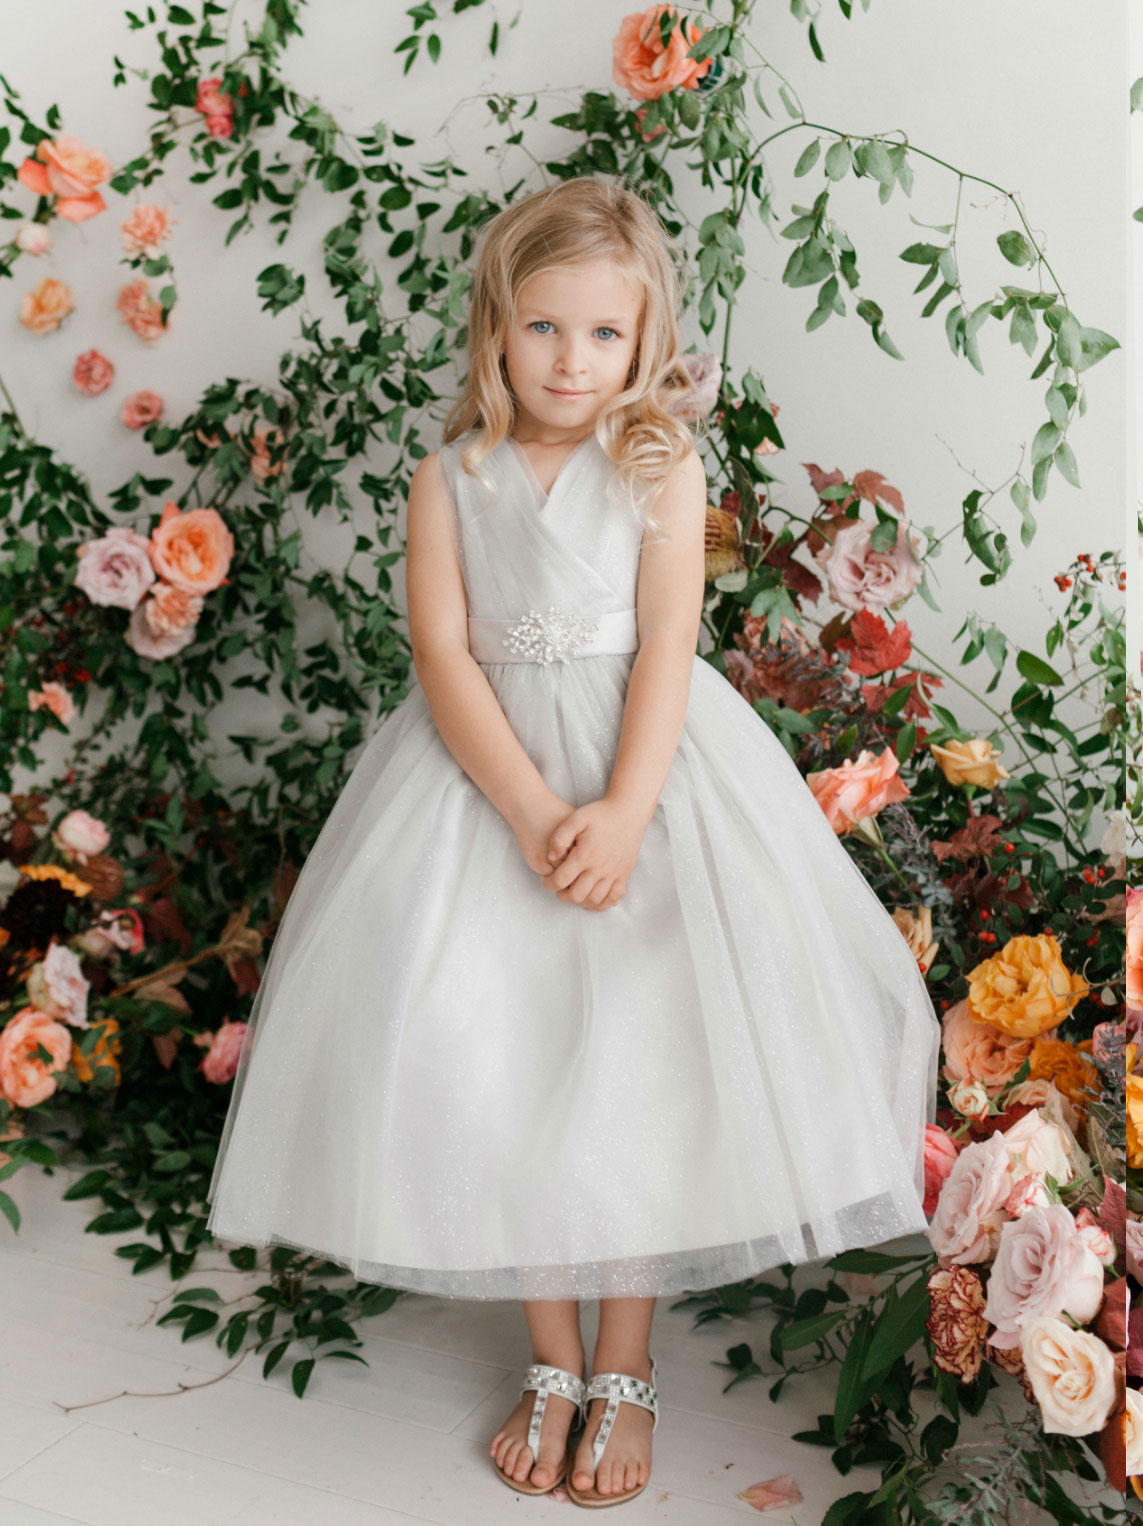 Tt 5698sv Girls Dress Style 5698 Silver Sparkly Tulle